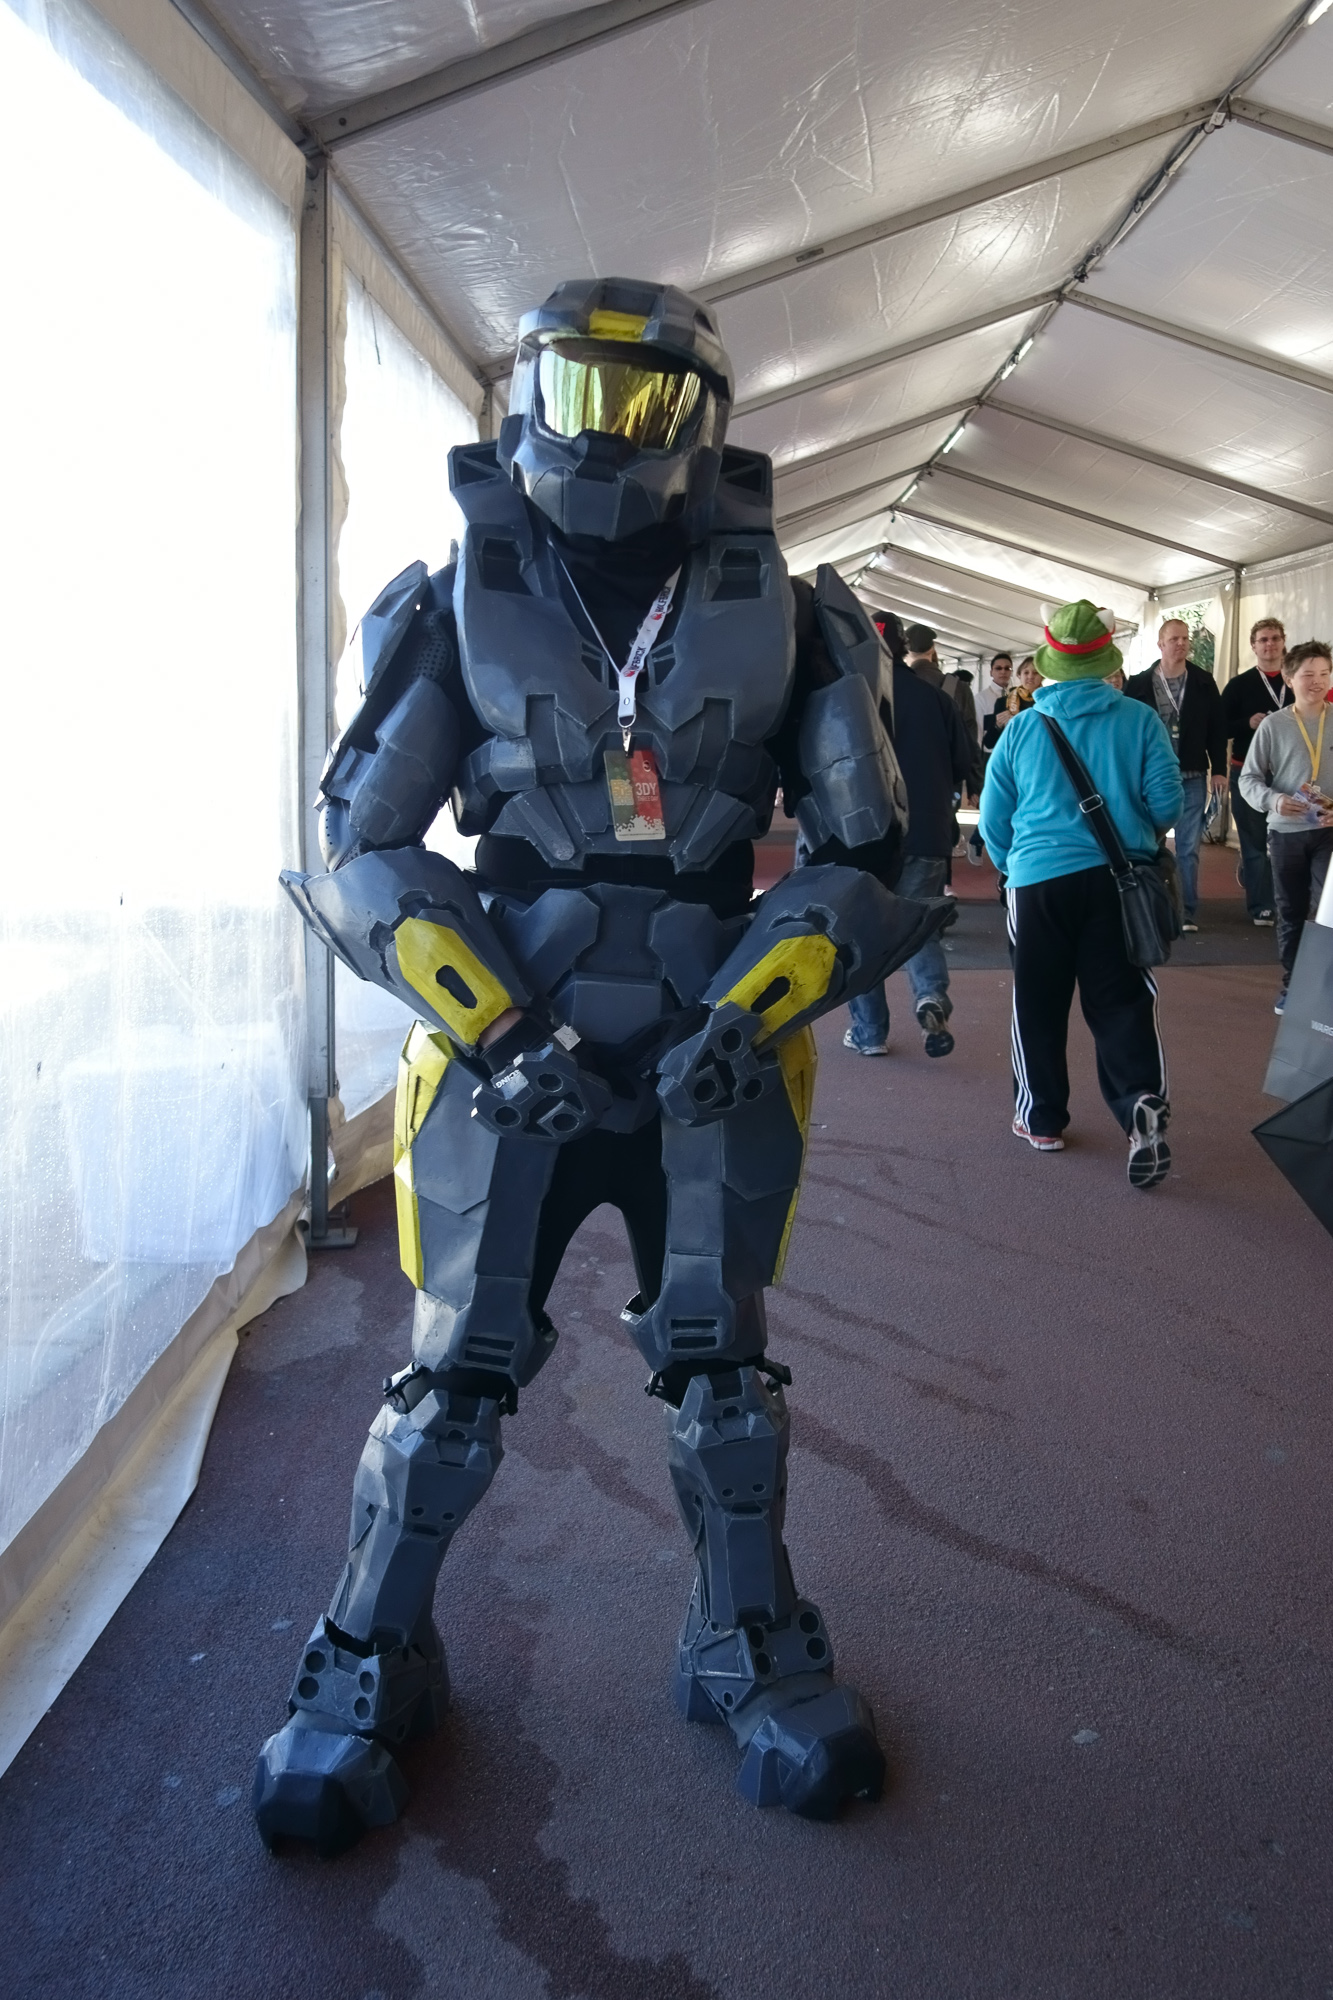 I think this guy is actually just a Spartan, not Master Chief himself, but then again, it's been ages since I've played Halo. Related: https://twitter.com/teen_news69/status/348333644995260416